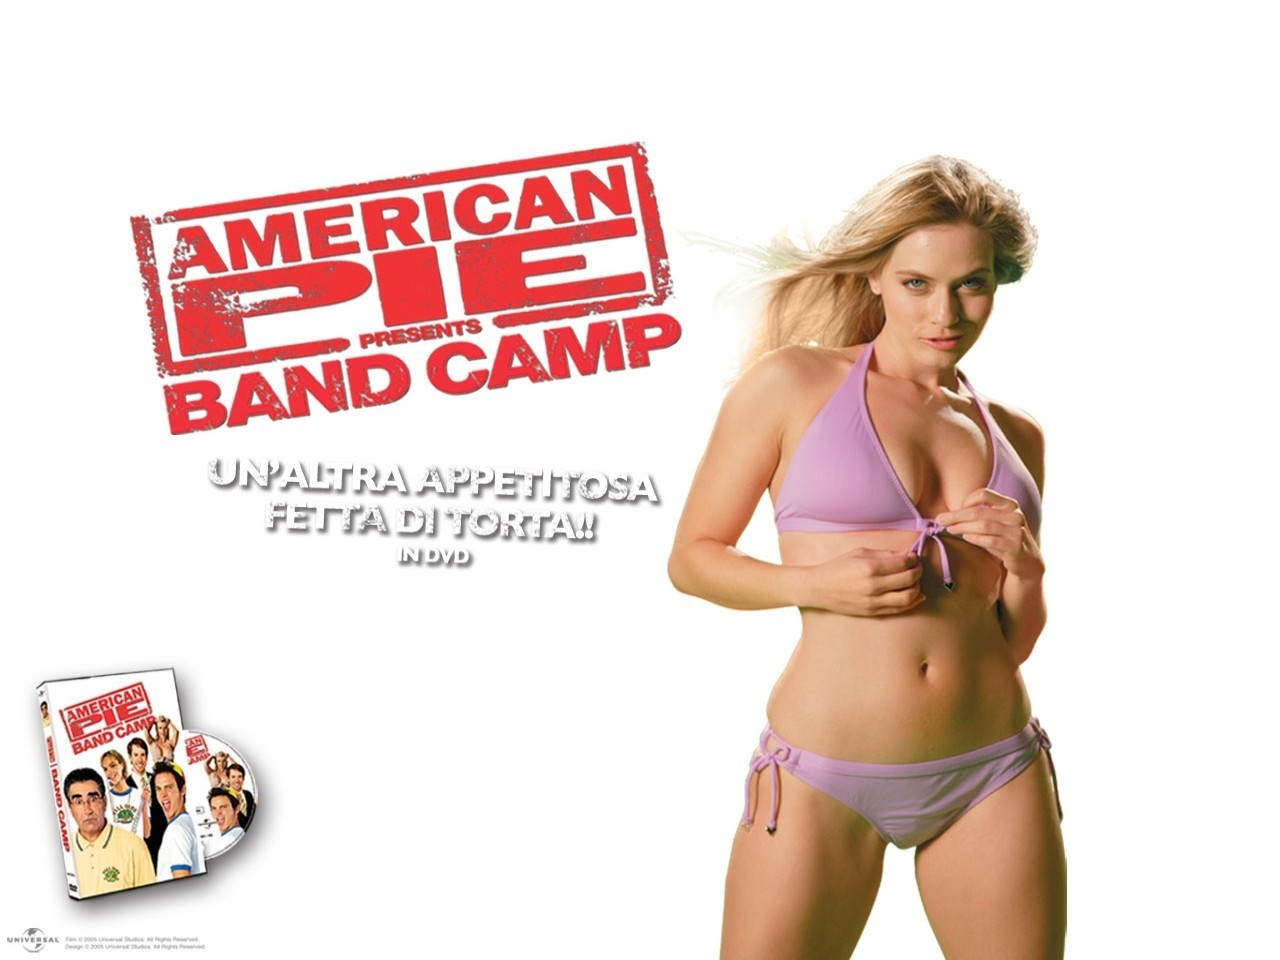 Think, that American pie band camp agree